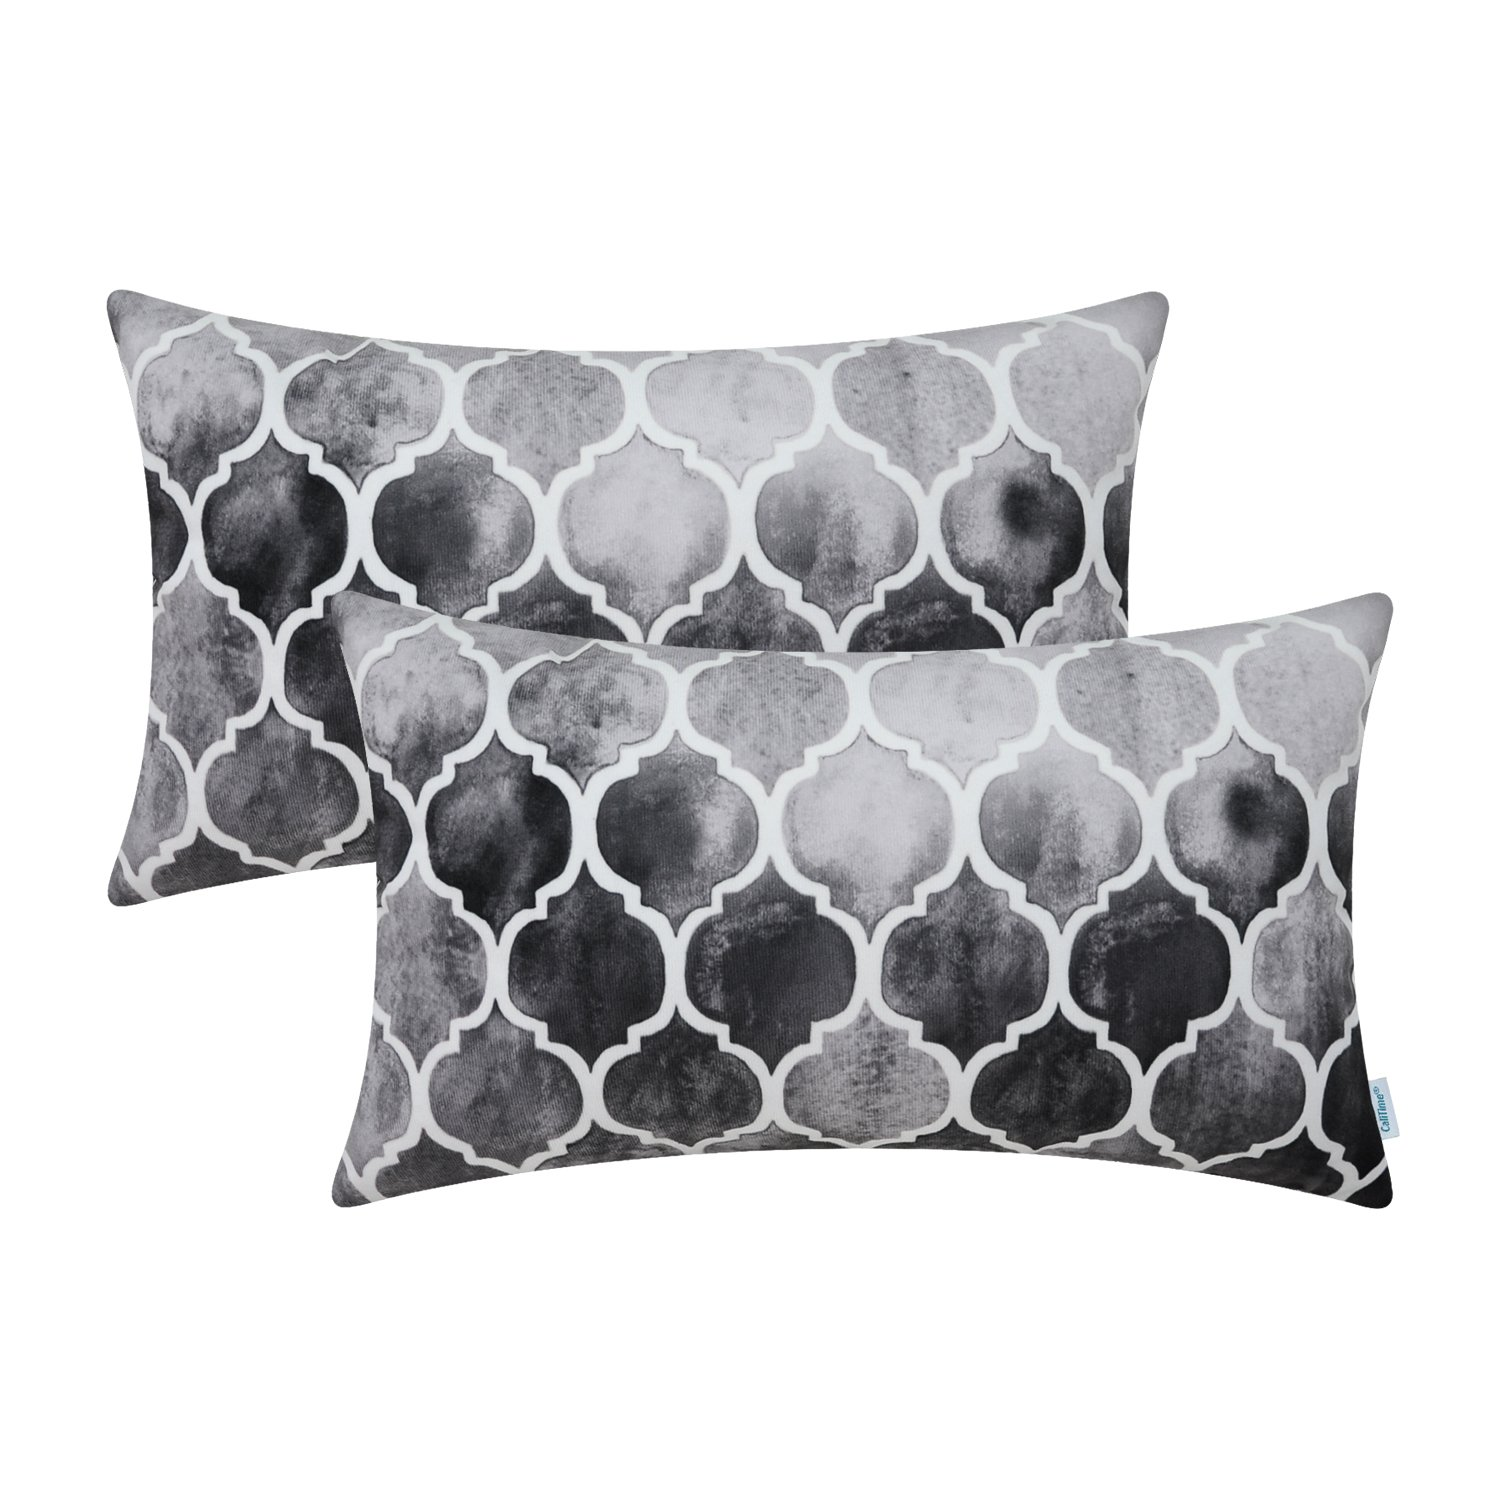 CaliTime Pack of 2 Cozy Bolster Pillow Cases Covers for Couch Bed Sofa, Manual Hand Painted Colorful Geometric Trellis Chain Print, 12 X 20 Inches, Main Gray Grey Carbon